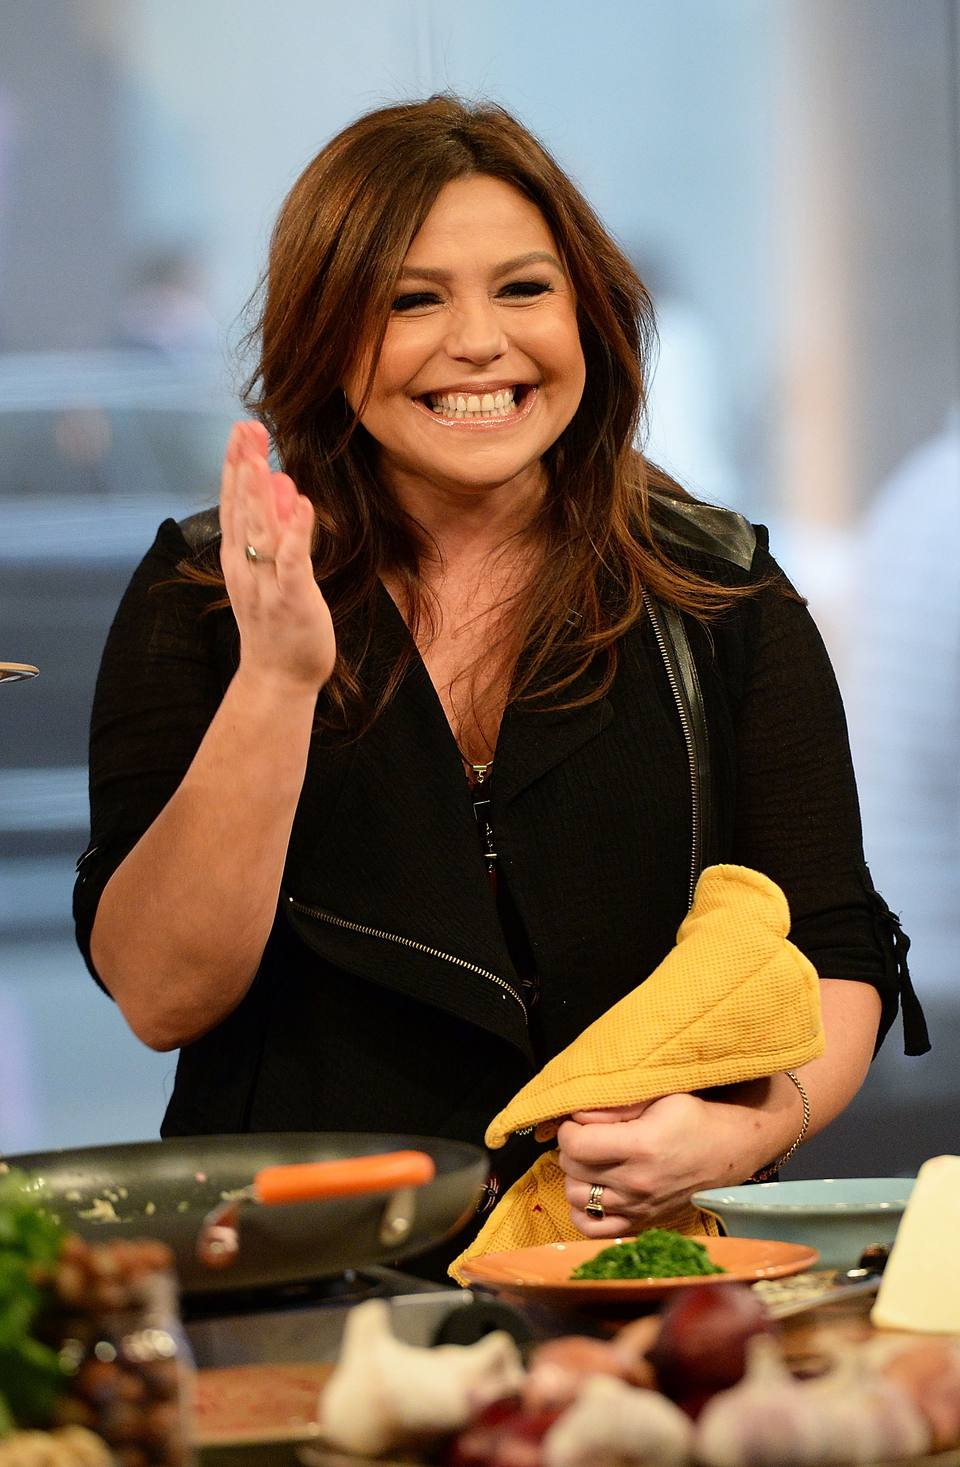 An Interview with Celebrity Chef Rachael Ray - YouTube